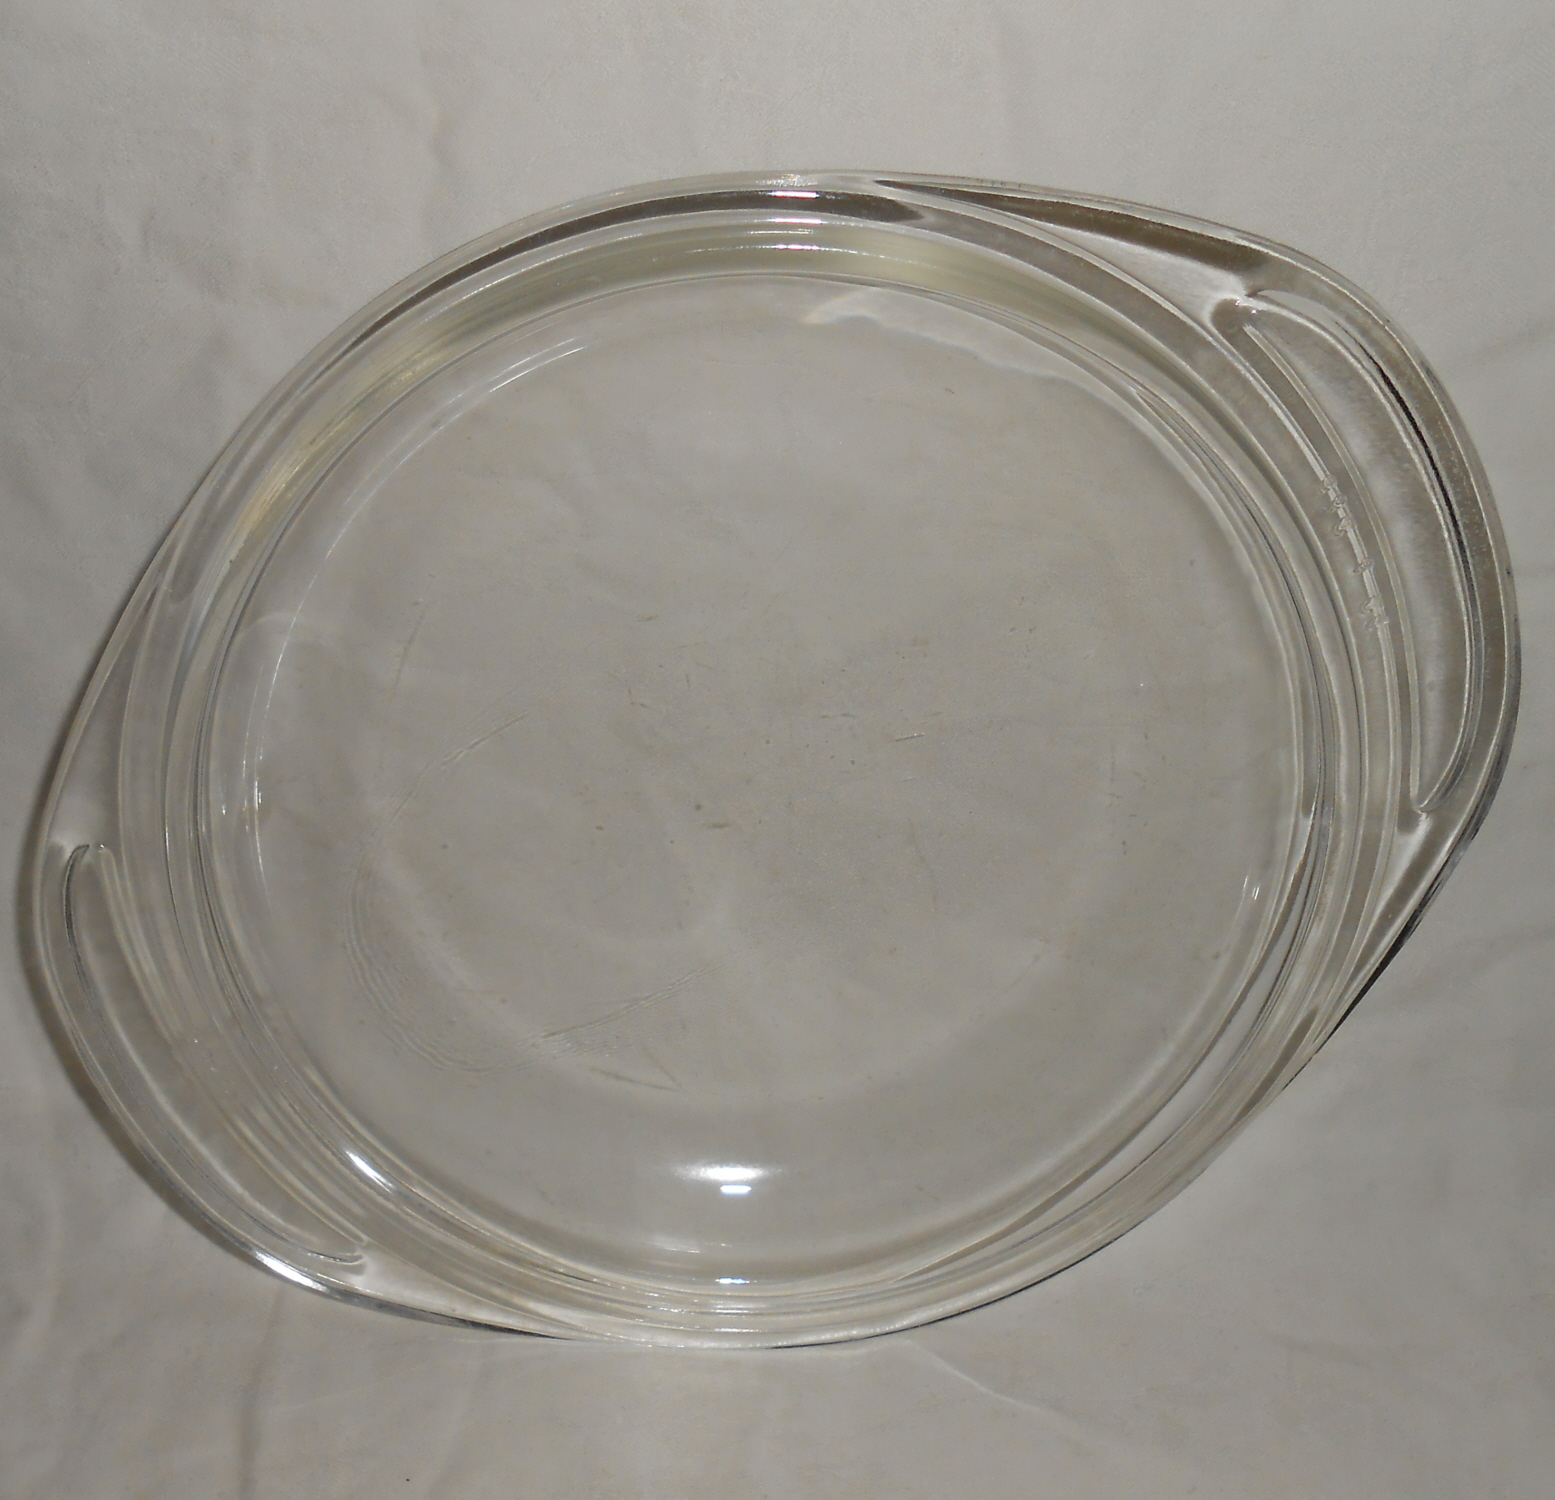 pyrex replacement clear glass - photo #11